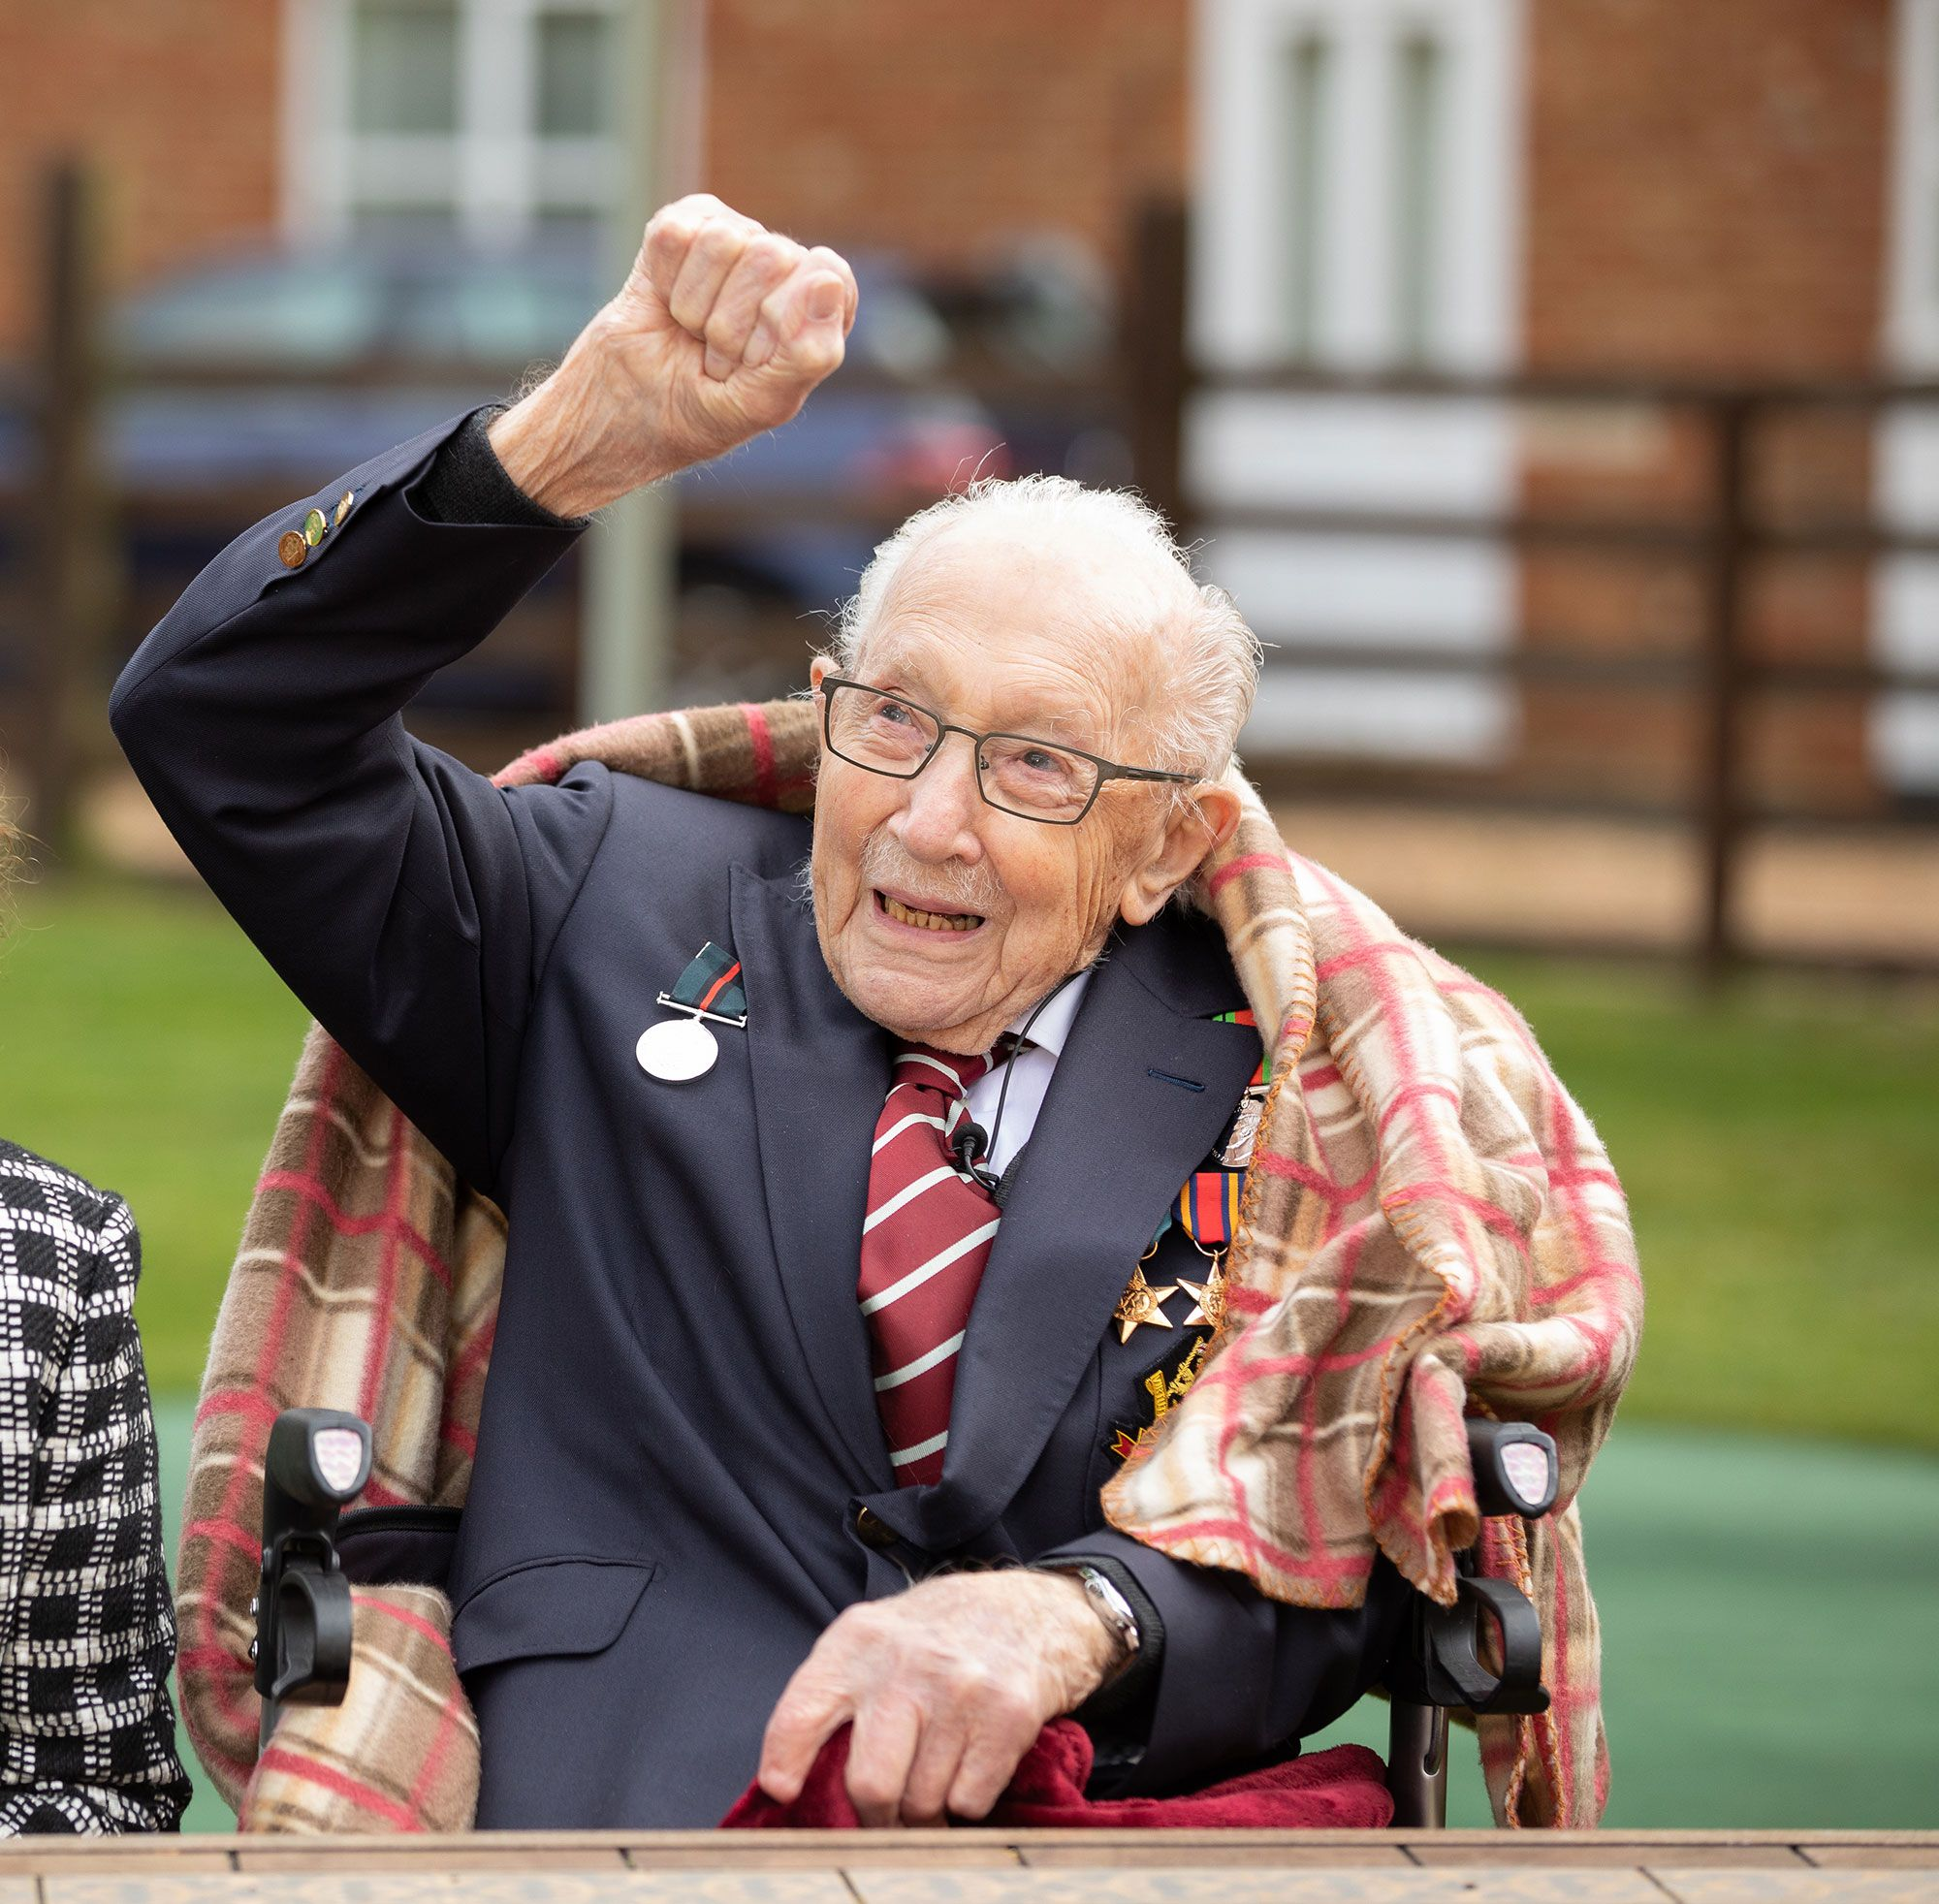 The Queen just gave Captain Tom Moore a very special 100th birthday gift